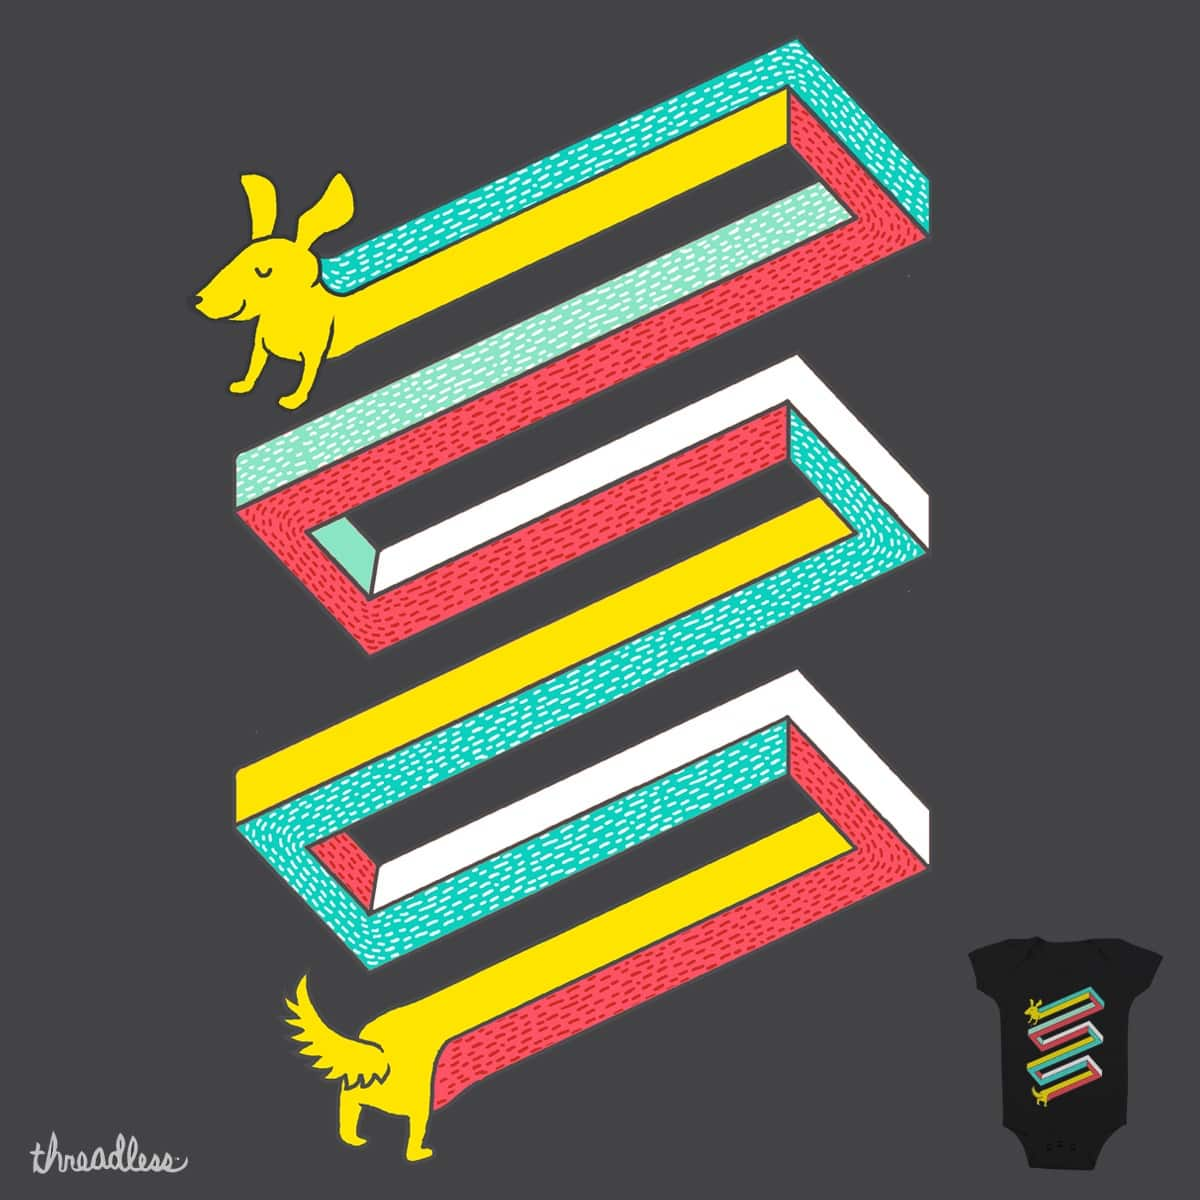 I'm Impossible! by hellofromthemoon on Threadless